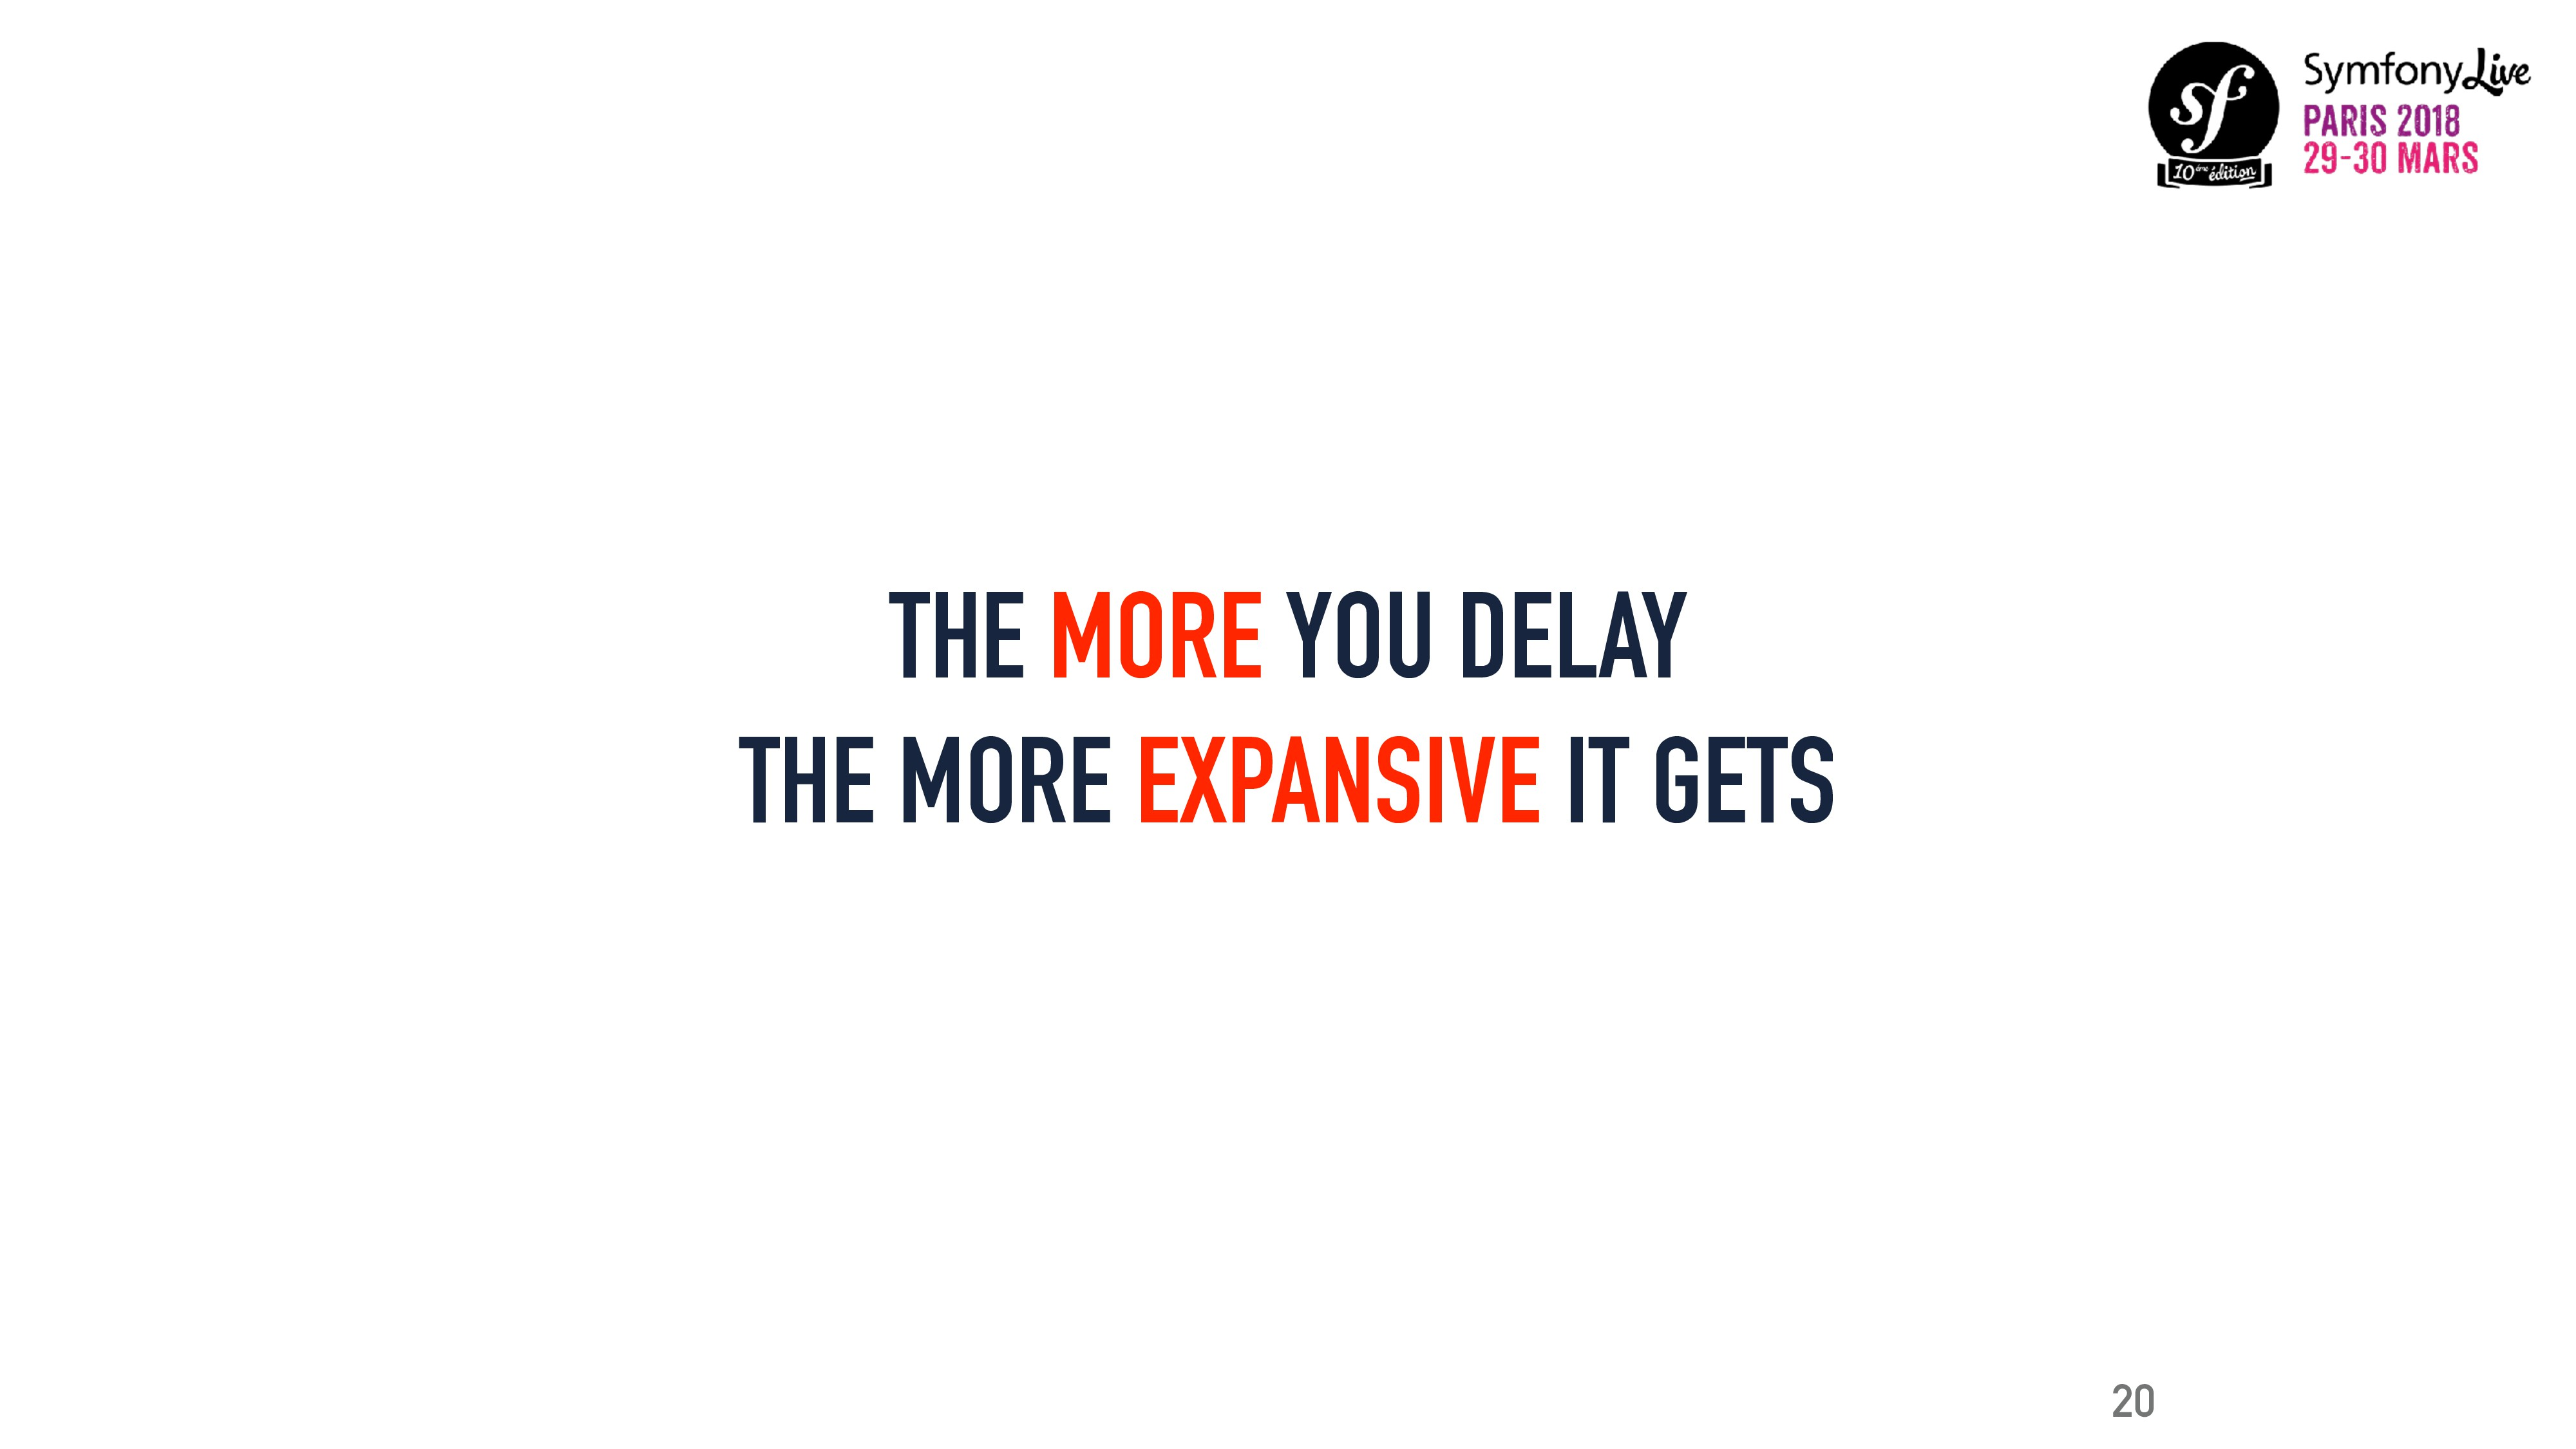 THE MORE YOU DELAY THE MORE EXPANSIVE IT GETS 20